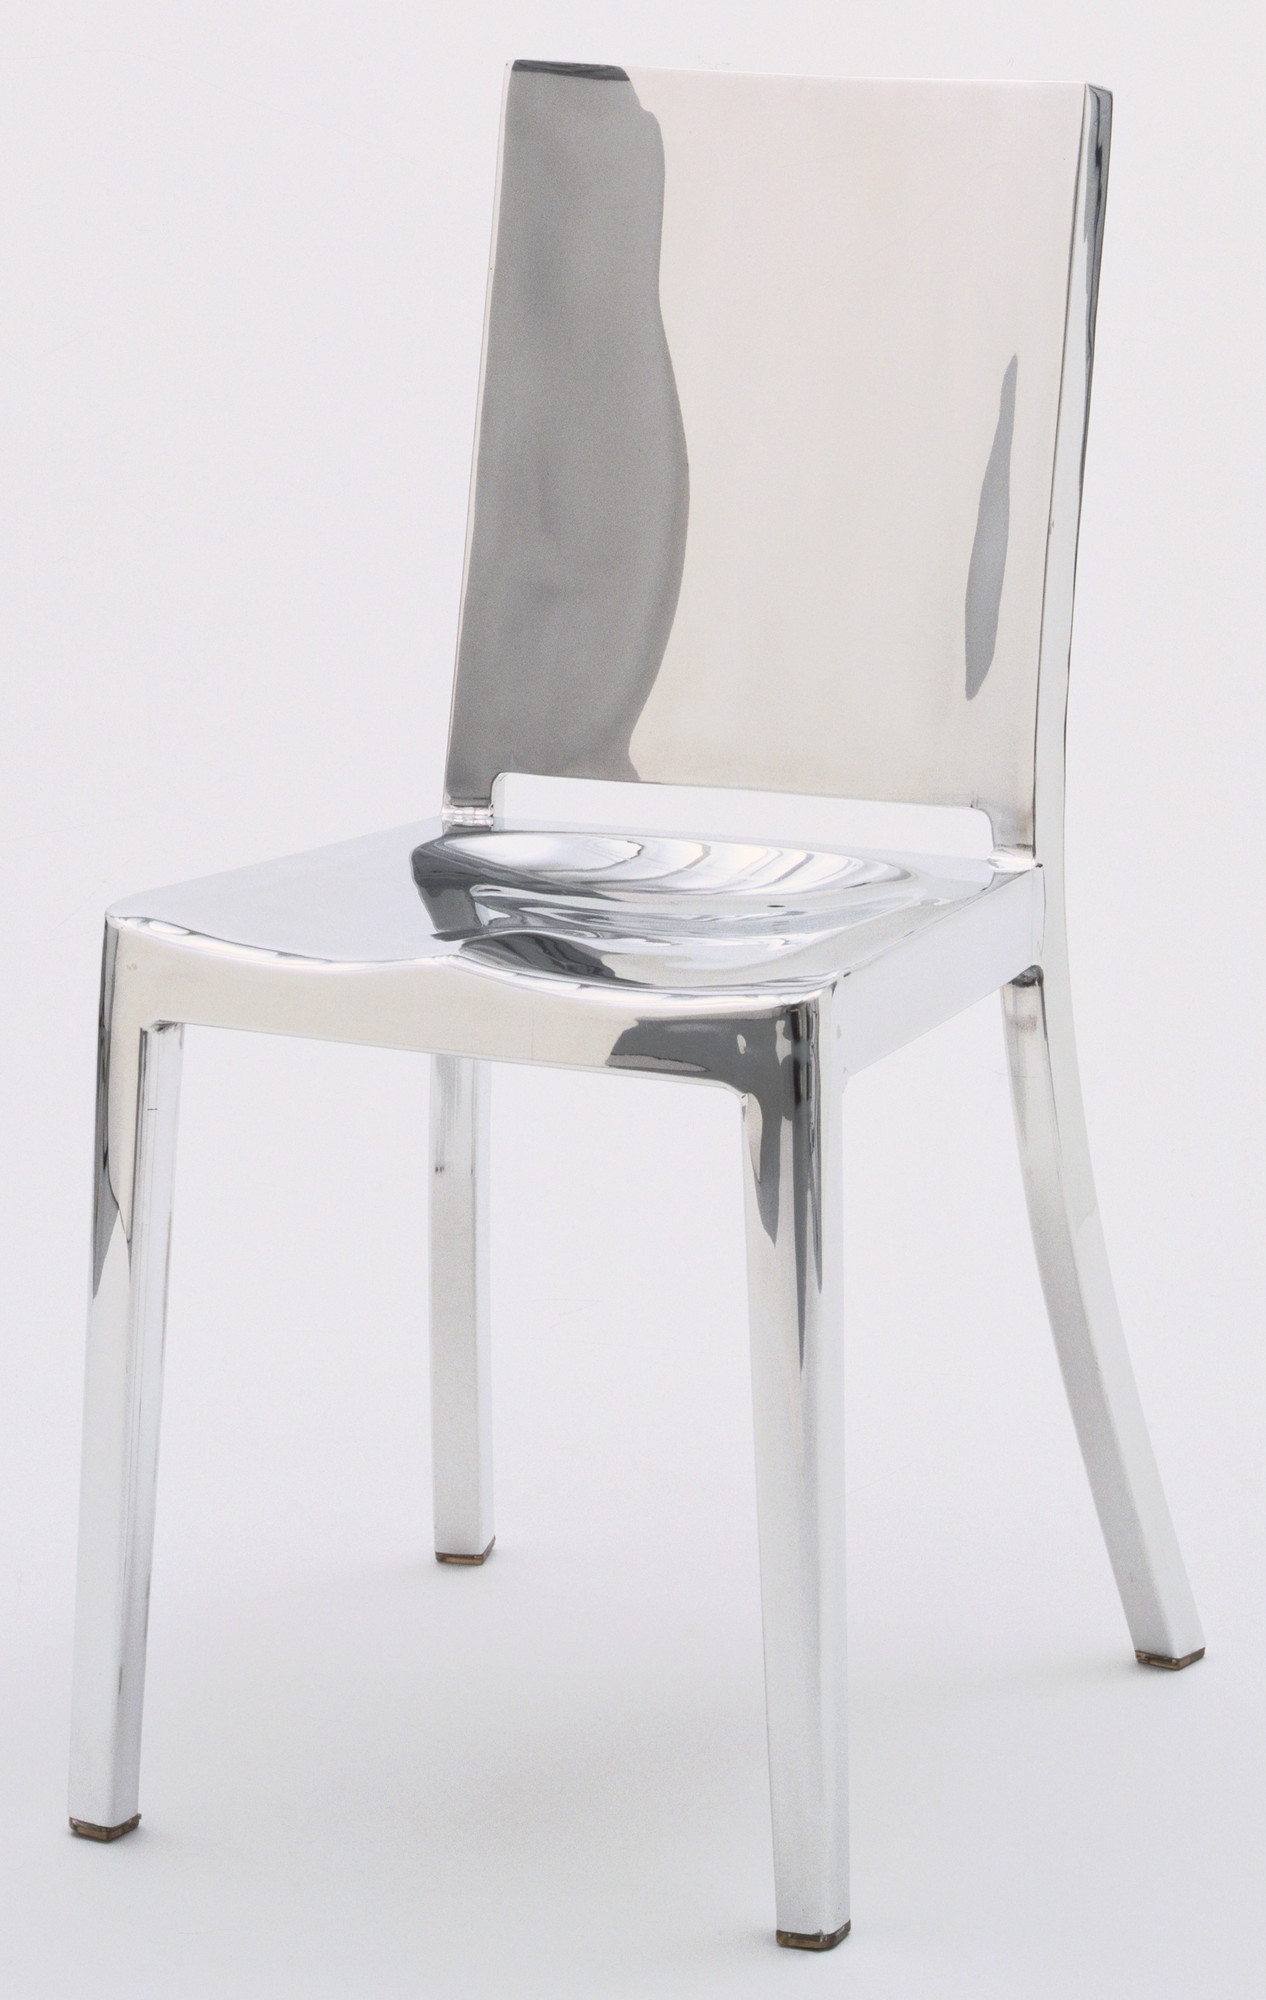 Philippe Starck. Hudson Chair. 2000